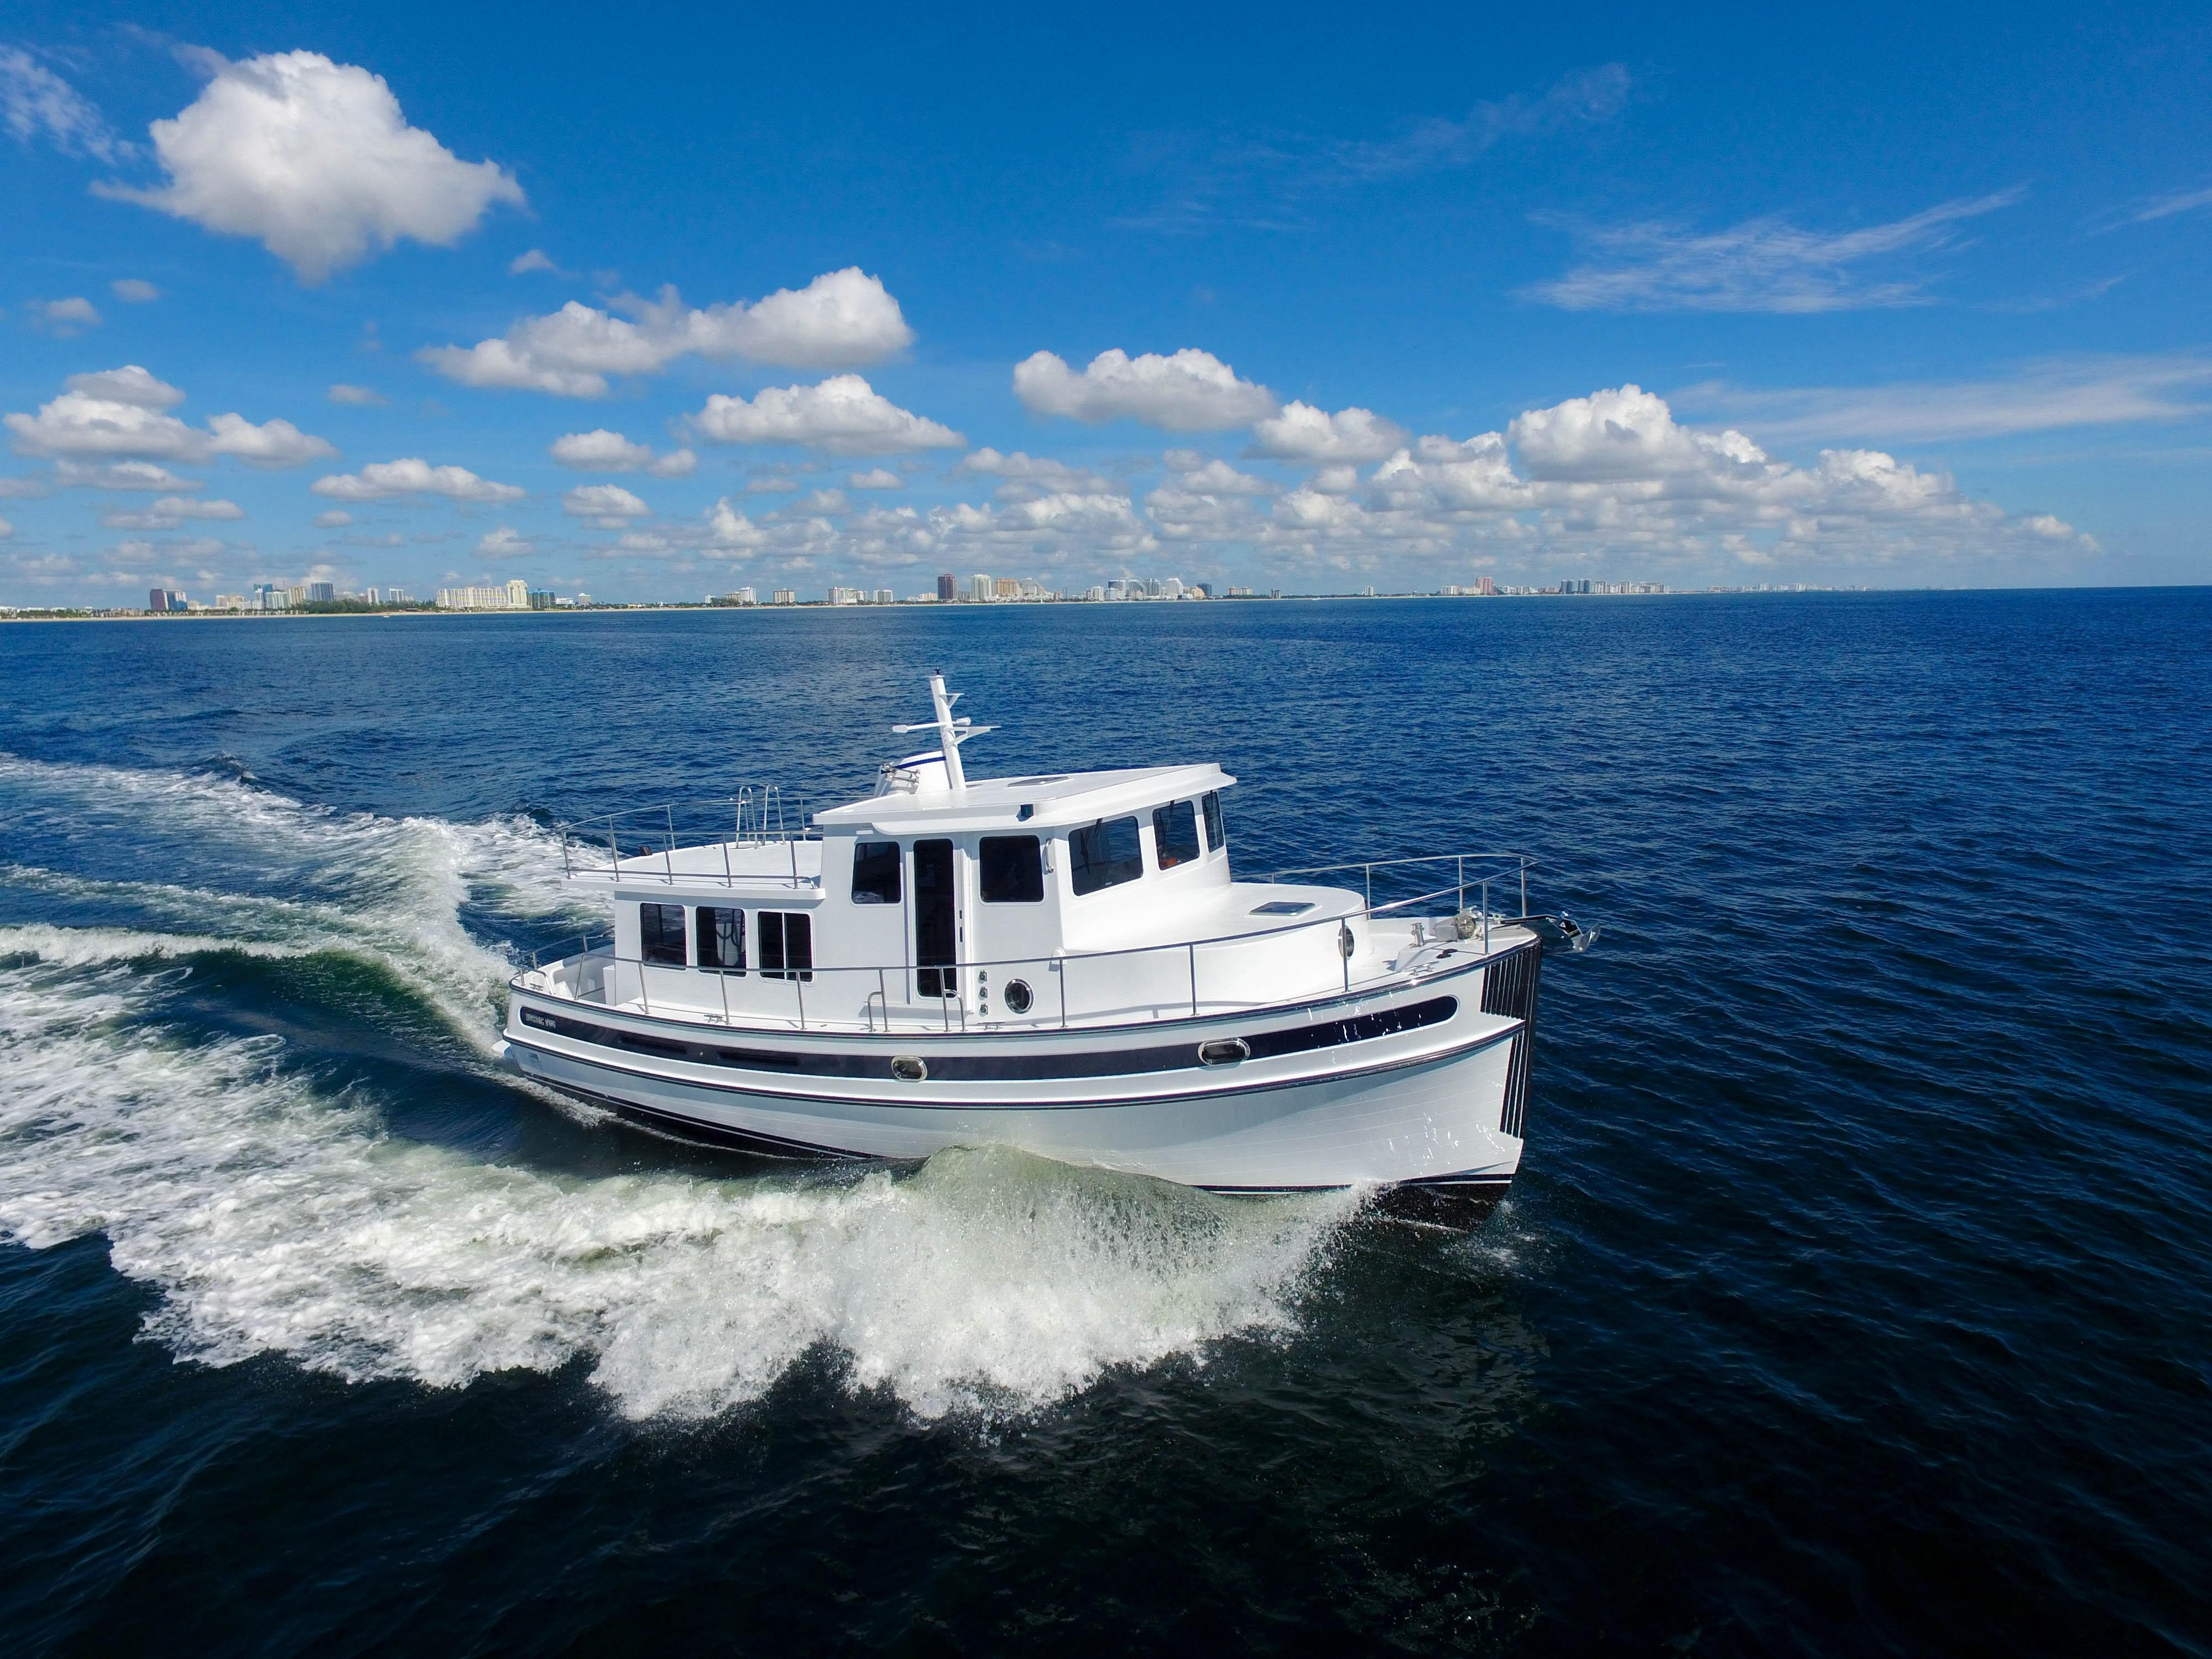 Used Nordic Tugs Yachts For Sale | Nordic Tugs Boats For